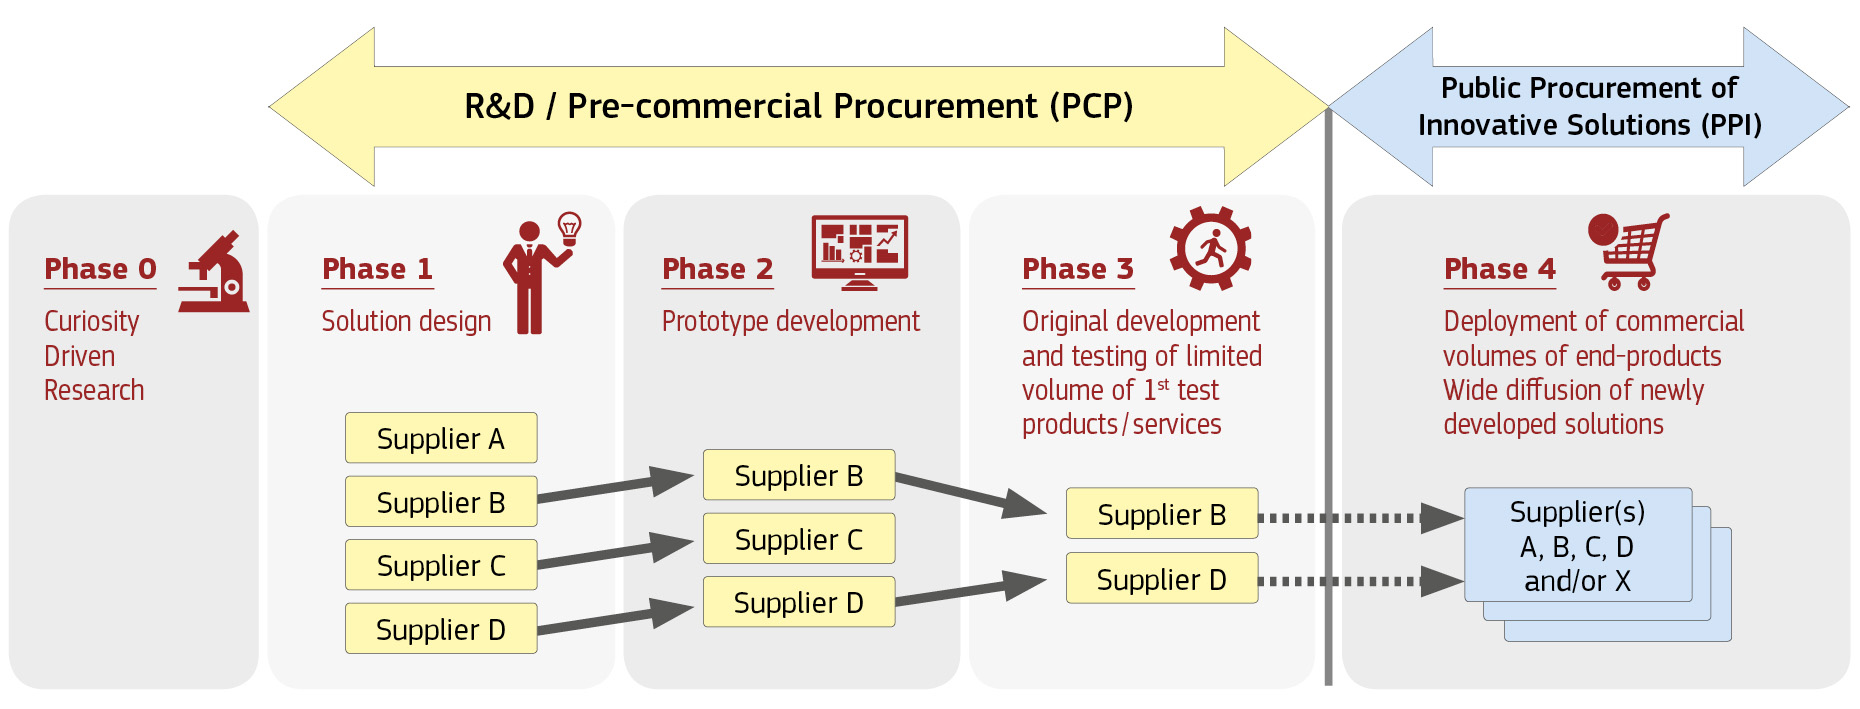 infographic showing 3 phases of Pre-Commercial Procurement and 4th phase of Public Procurement of Innovative Solutions